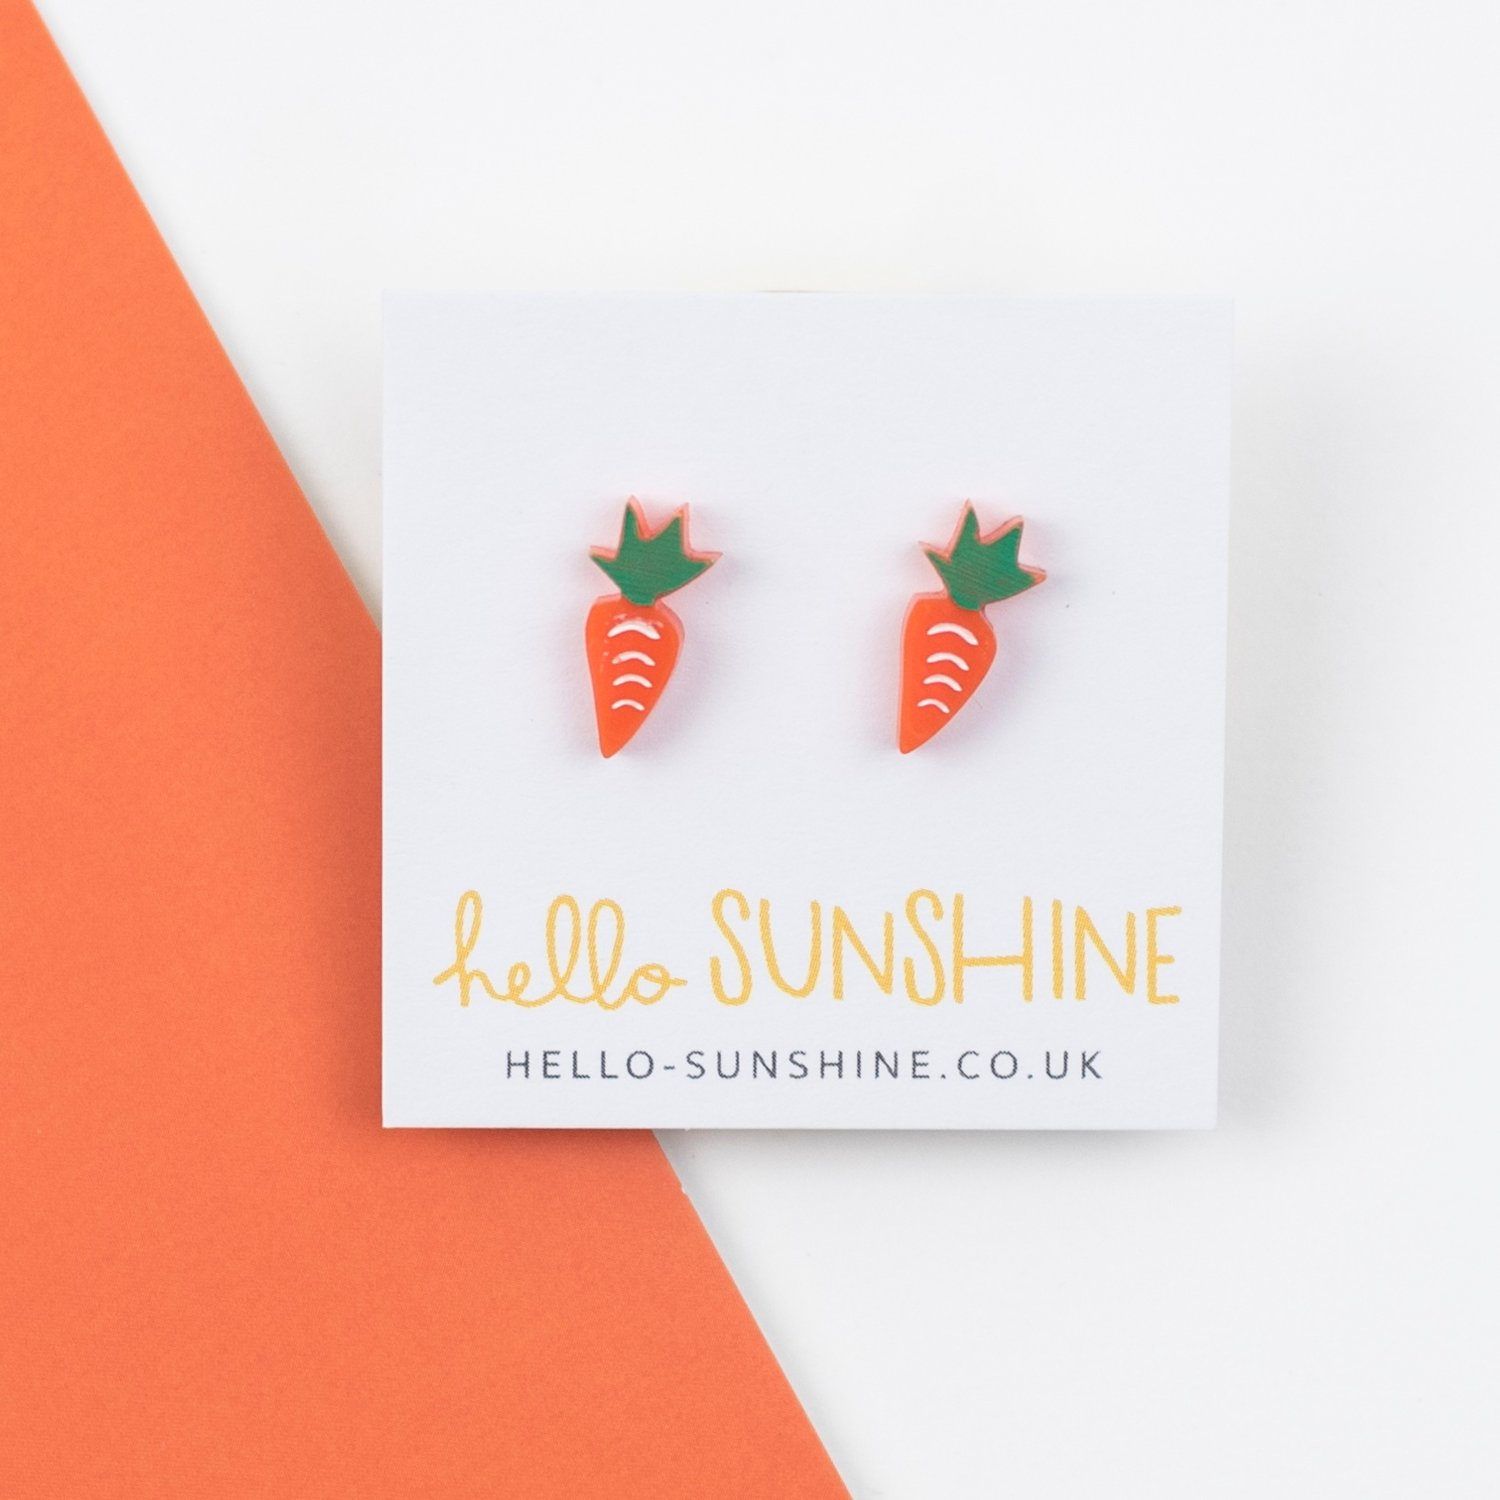 Teeny tiny carrots for your ear lobes!